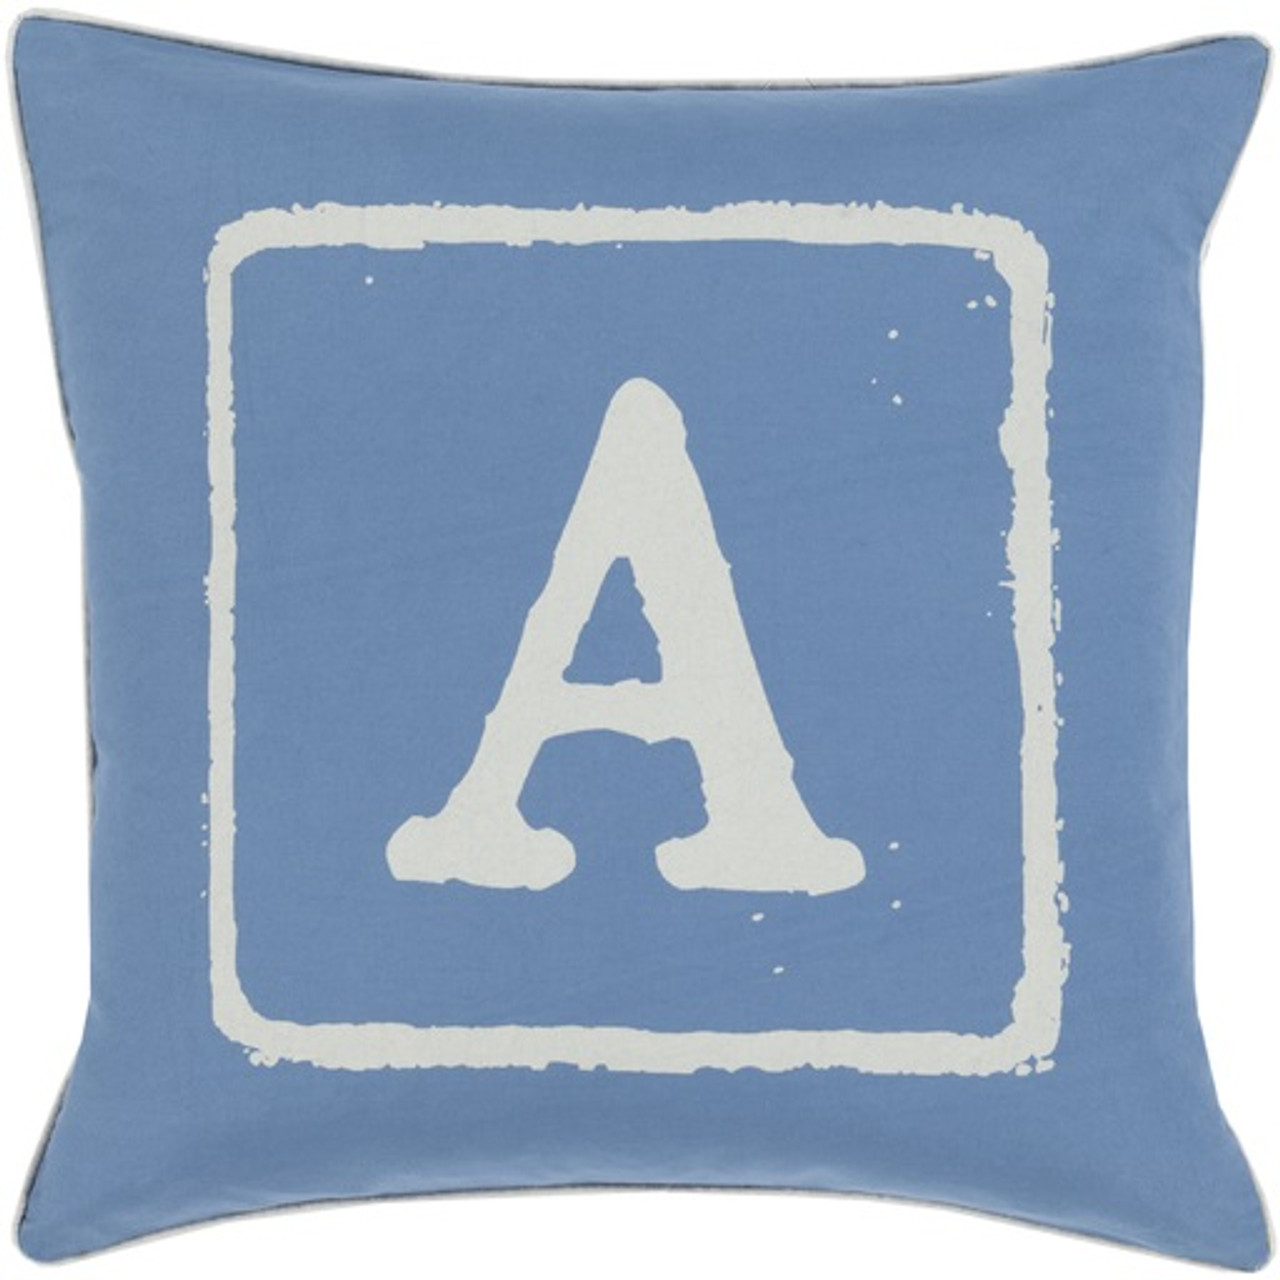 Blue Down Throw Pillows : 20